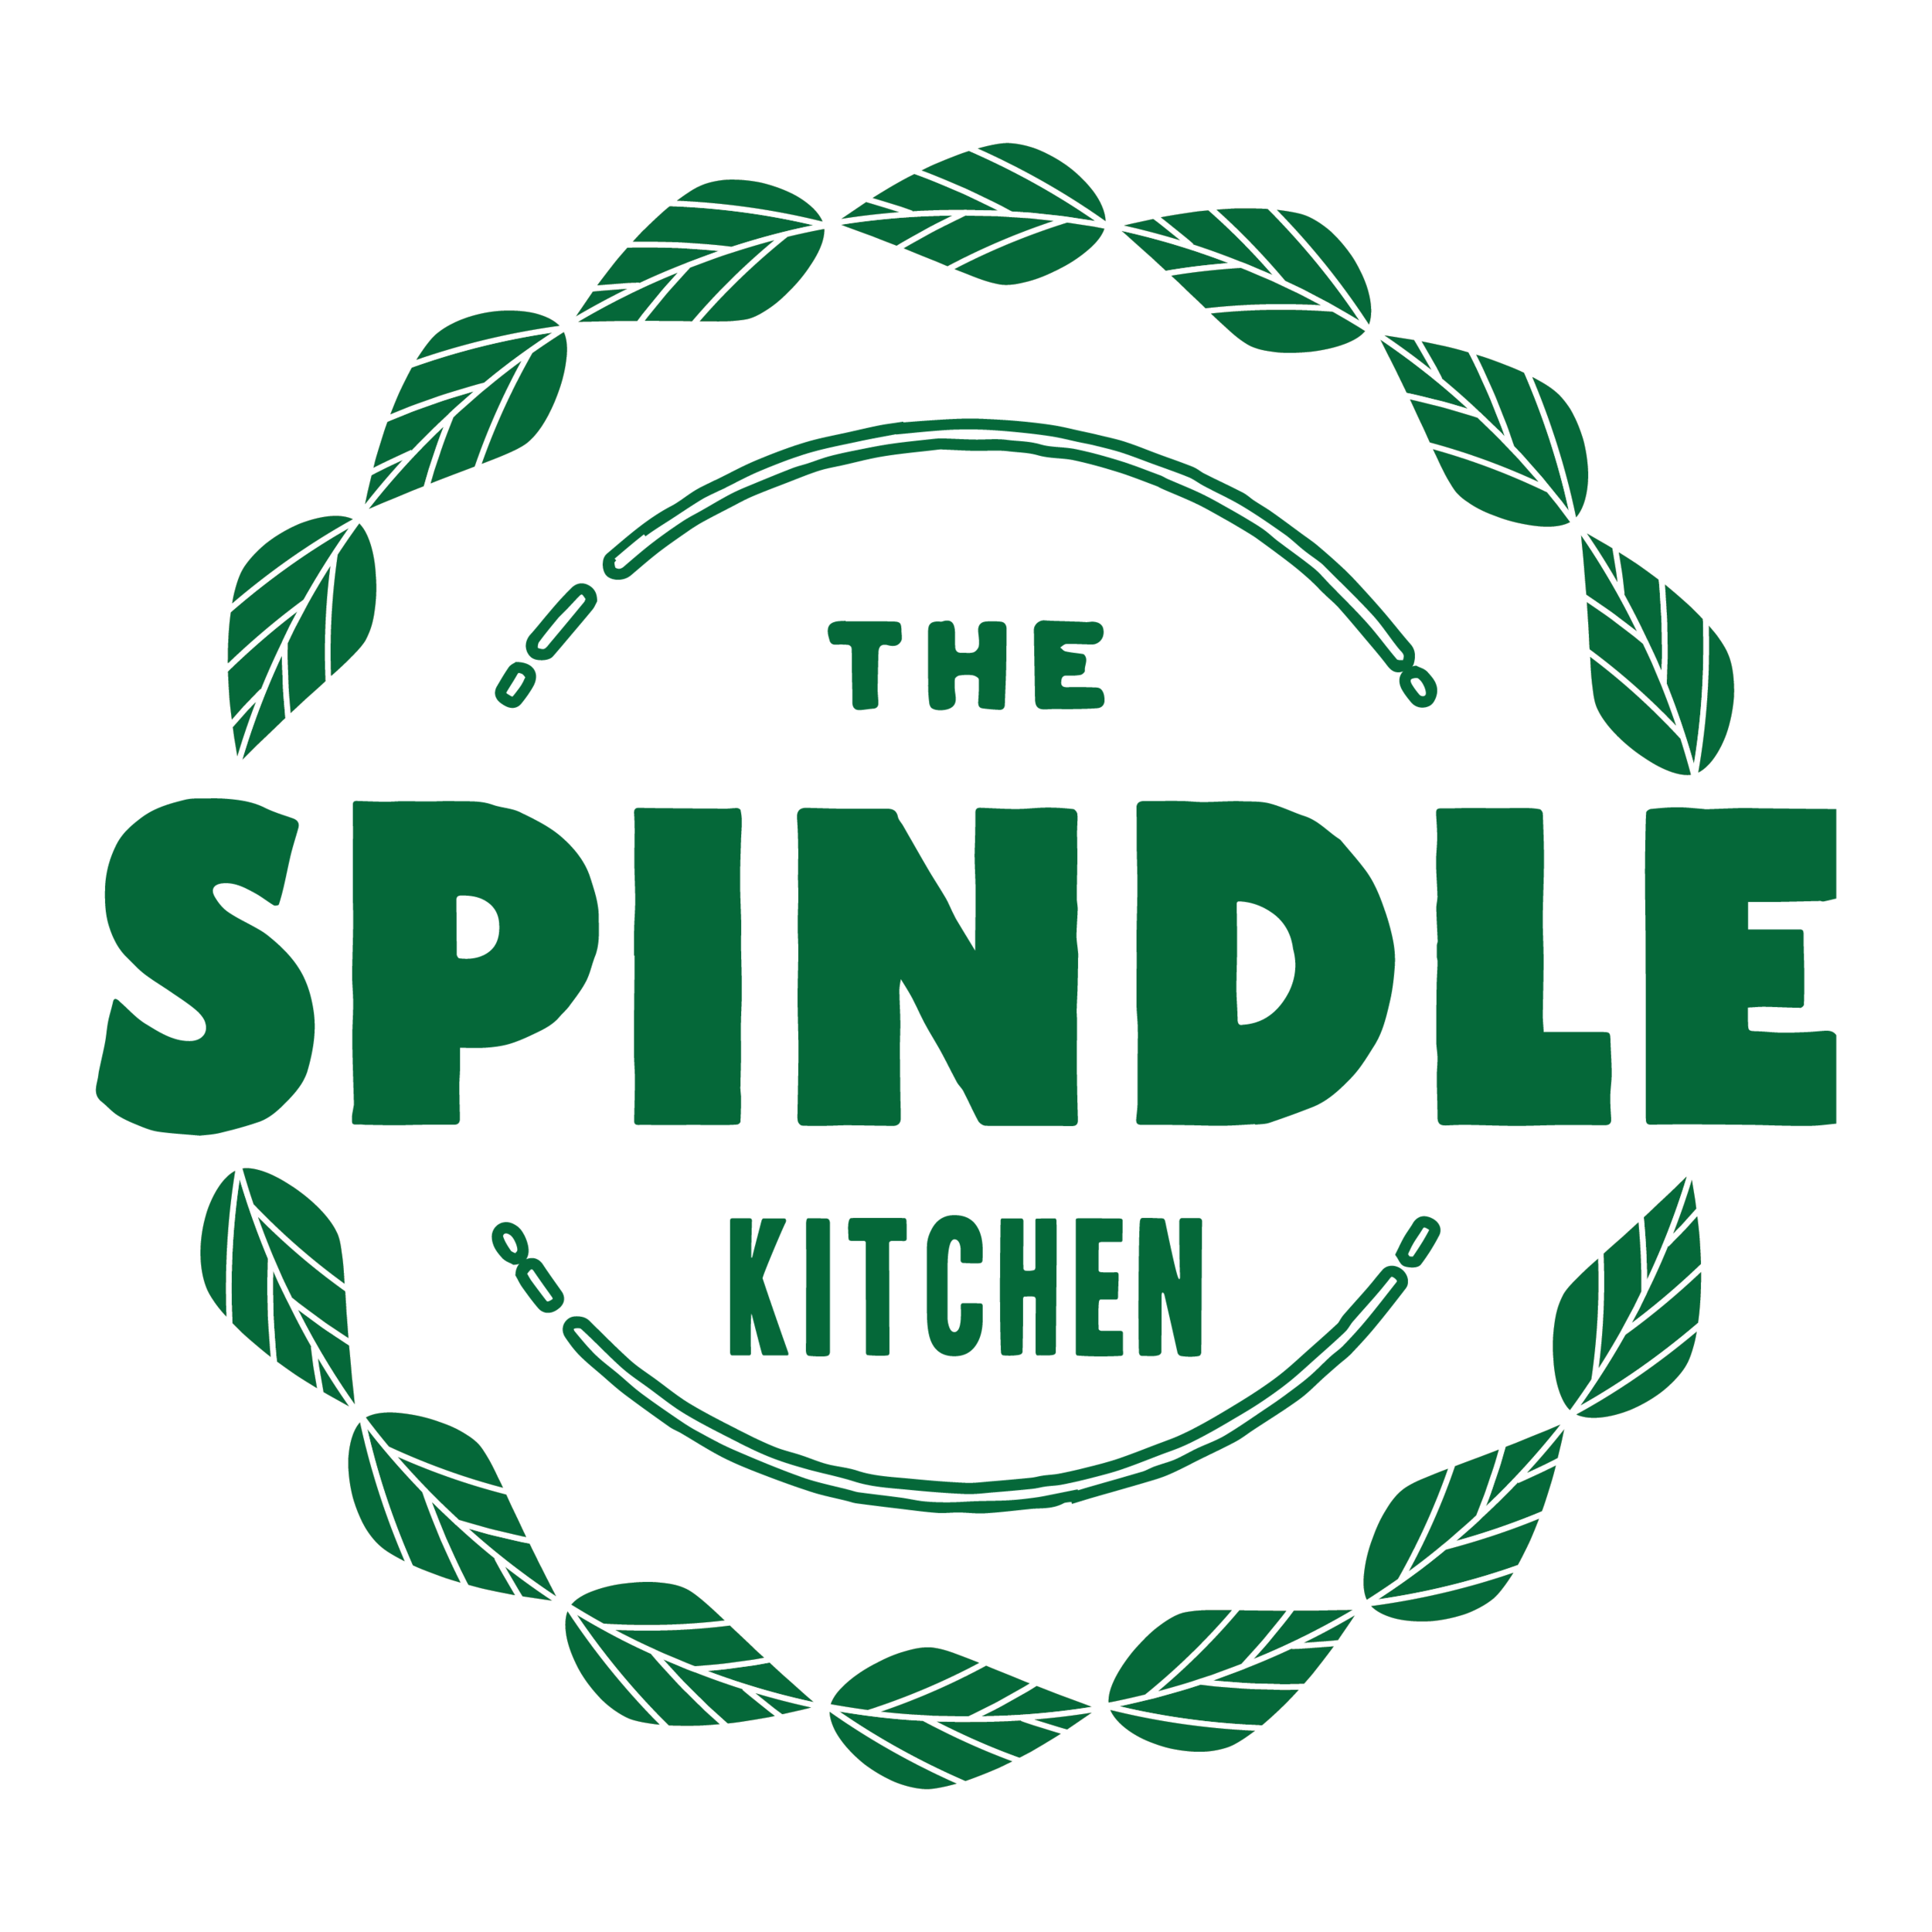 The Spindle Kitchen